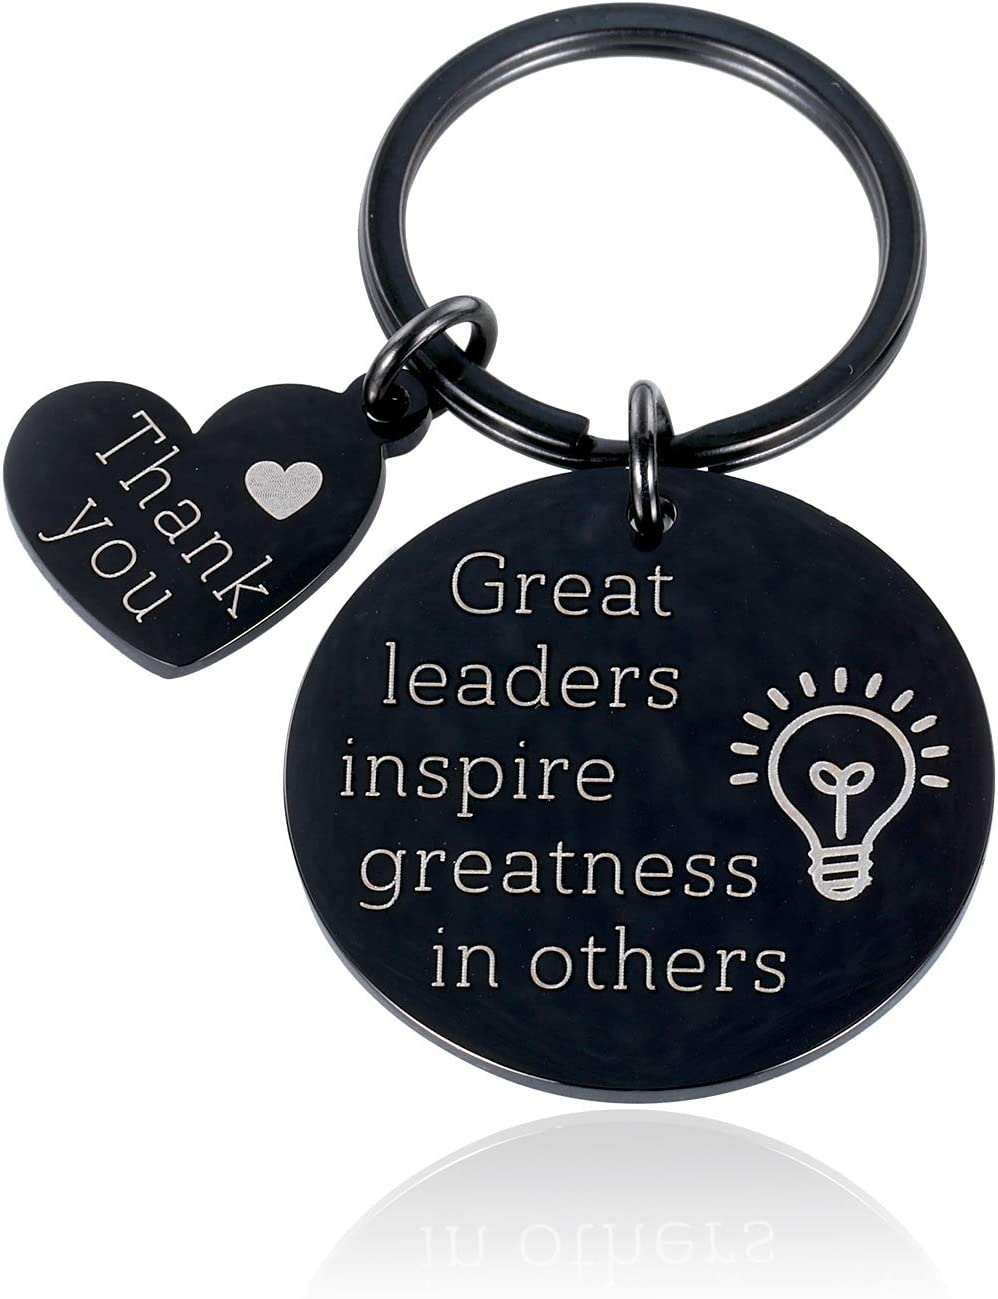 Thank You Boss Leadership Keychain Gift for Women Men Boss Day Lady Birthday Christams Gift for Mentor Him Her Friends Manager Appreciation Gift for Female Male Realtor BFF Coworker Going Away Gift